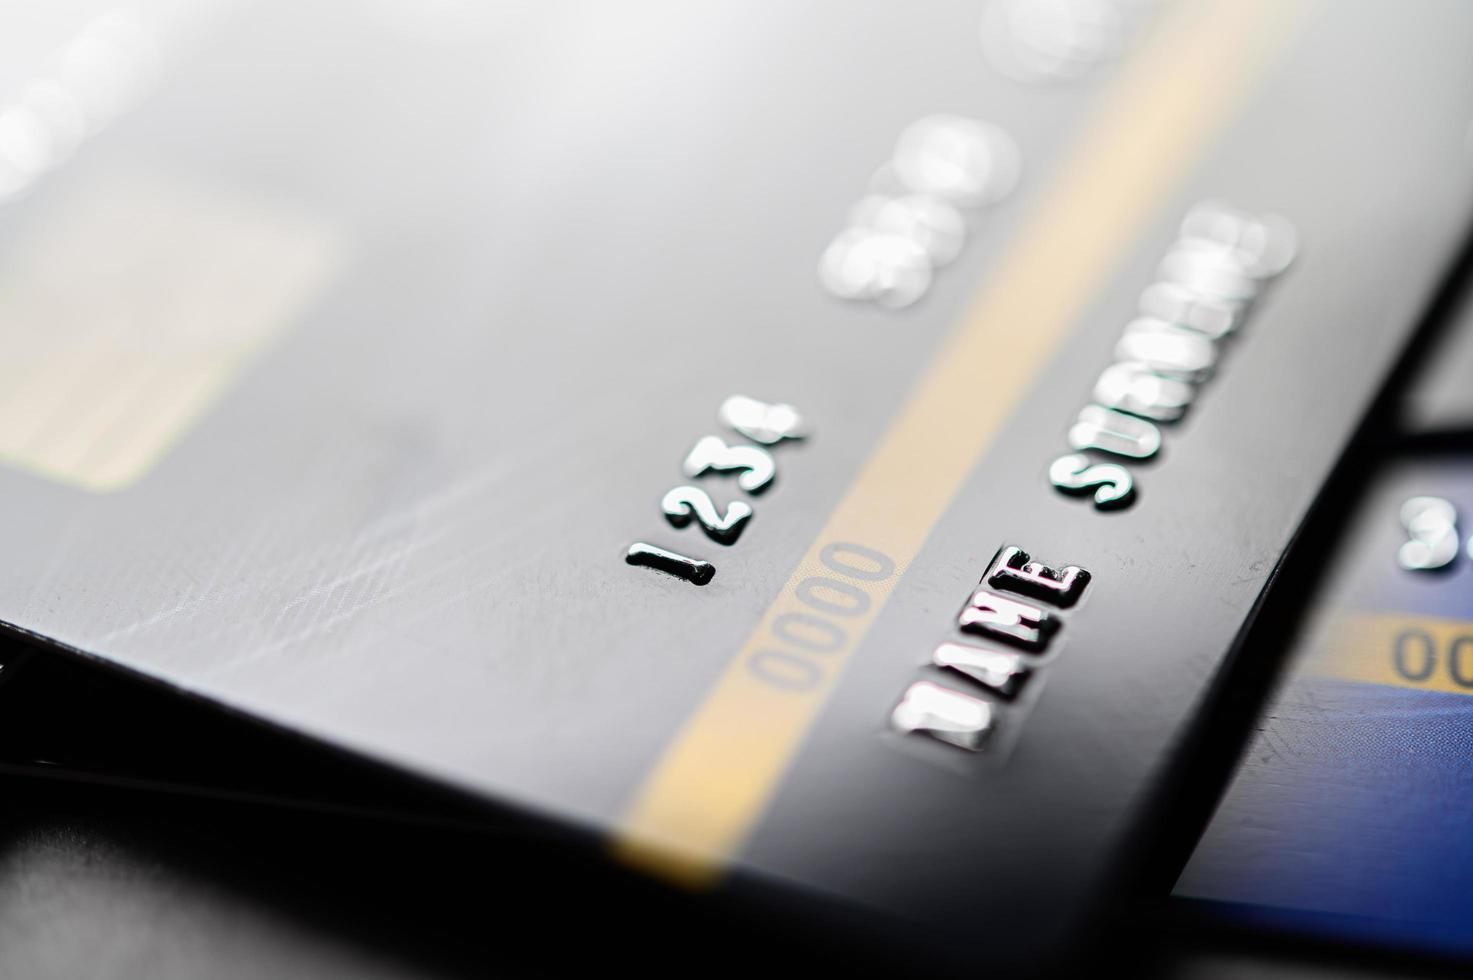 Credit cards stacked together photo